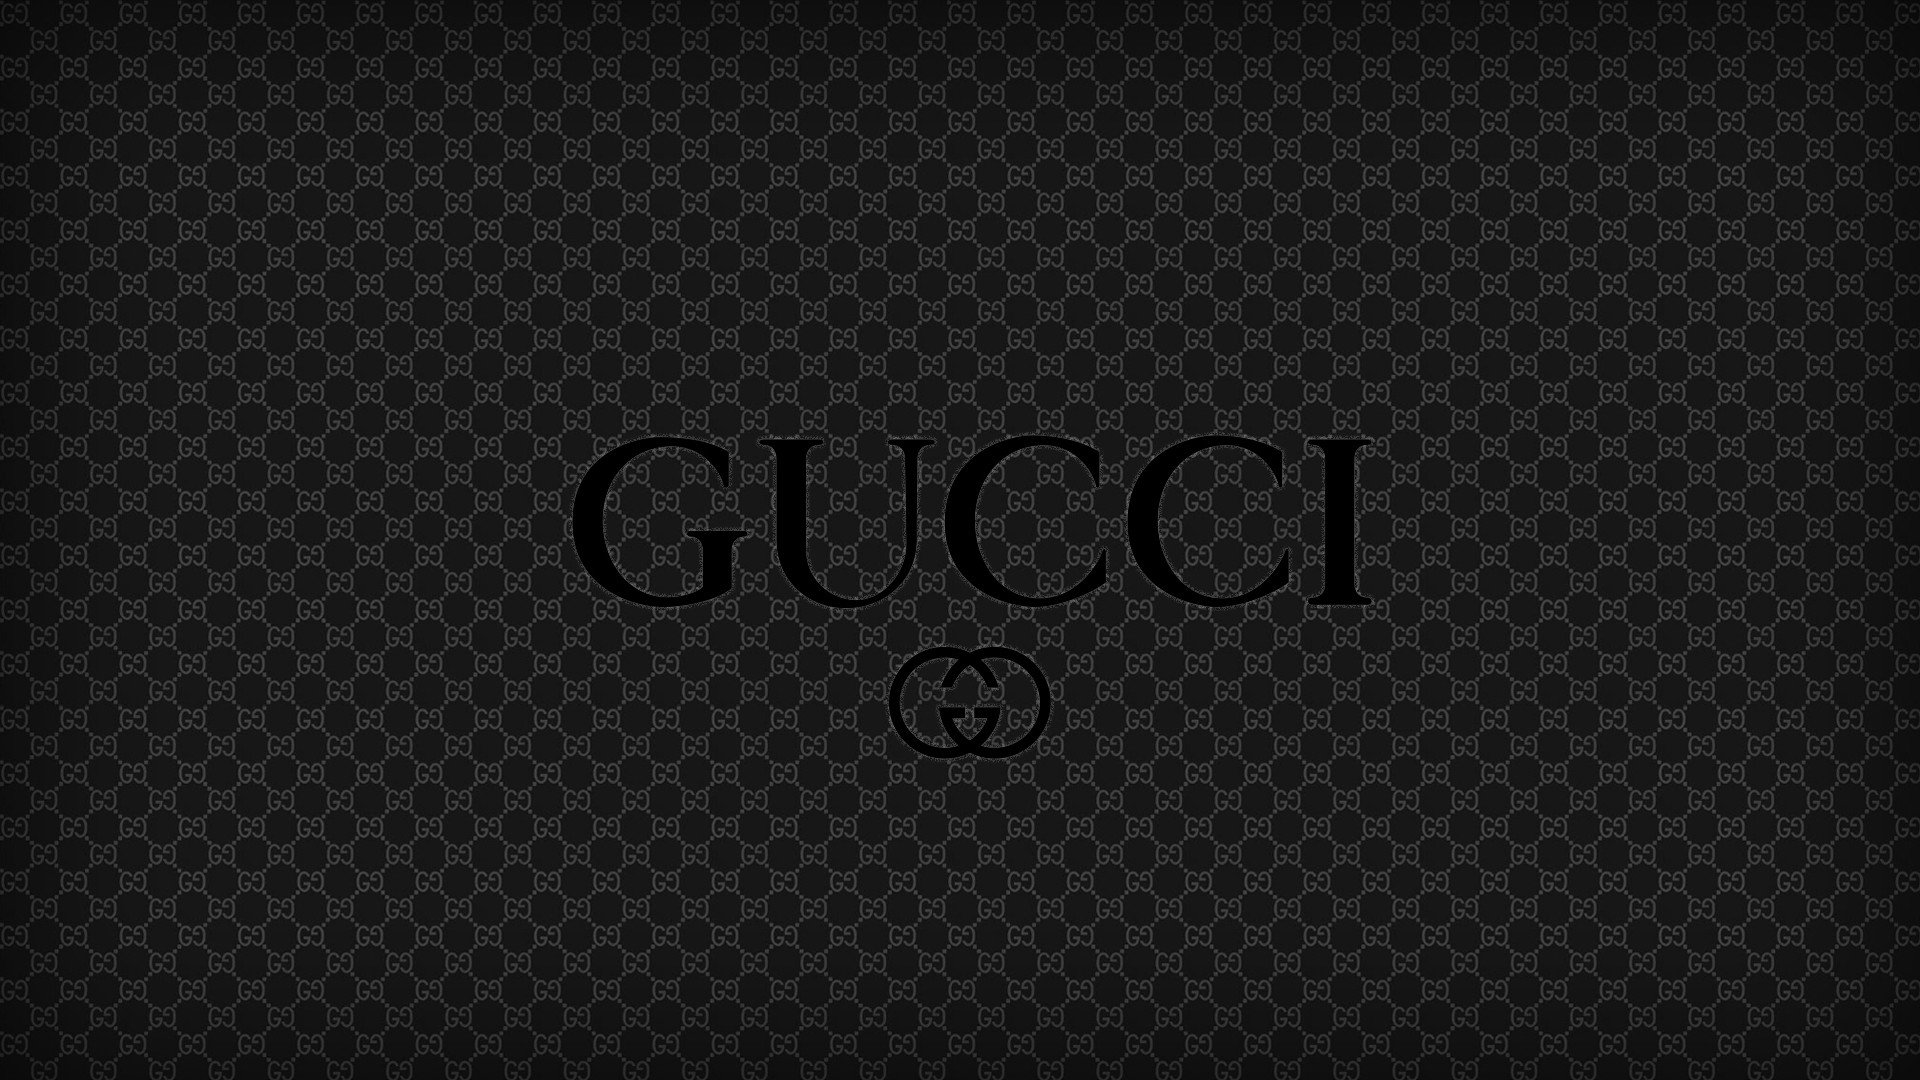 gucci mane wallpaper hd